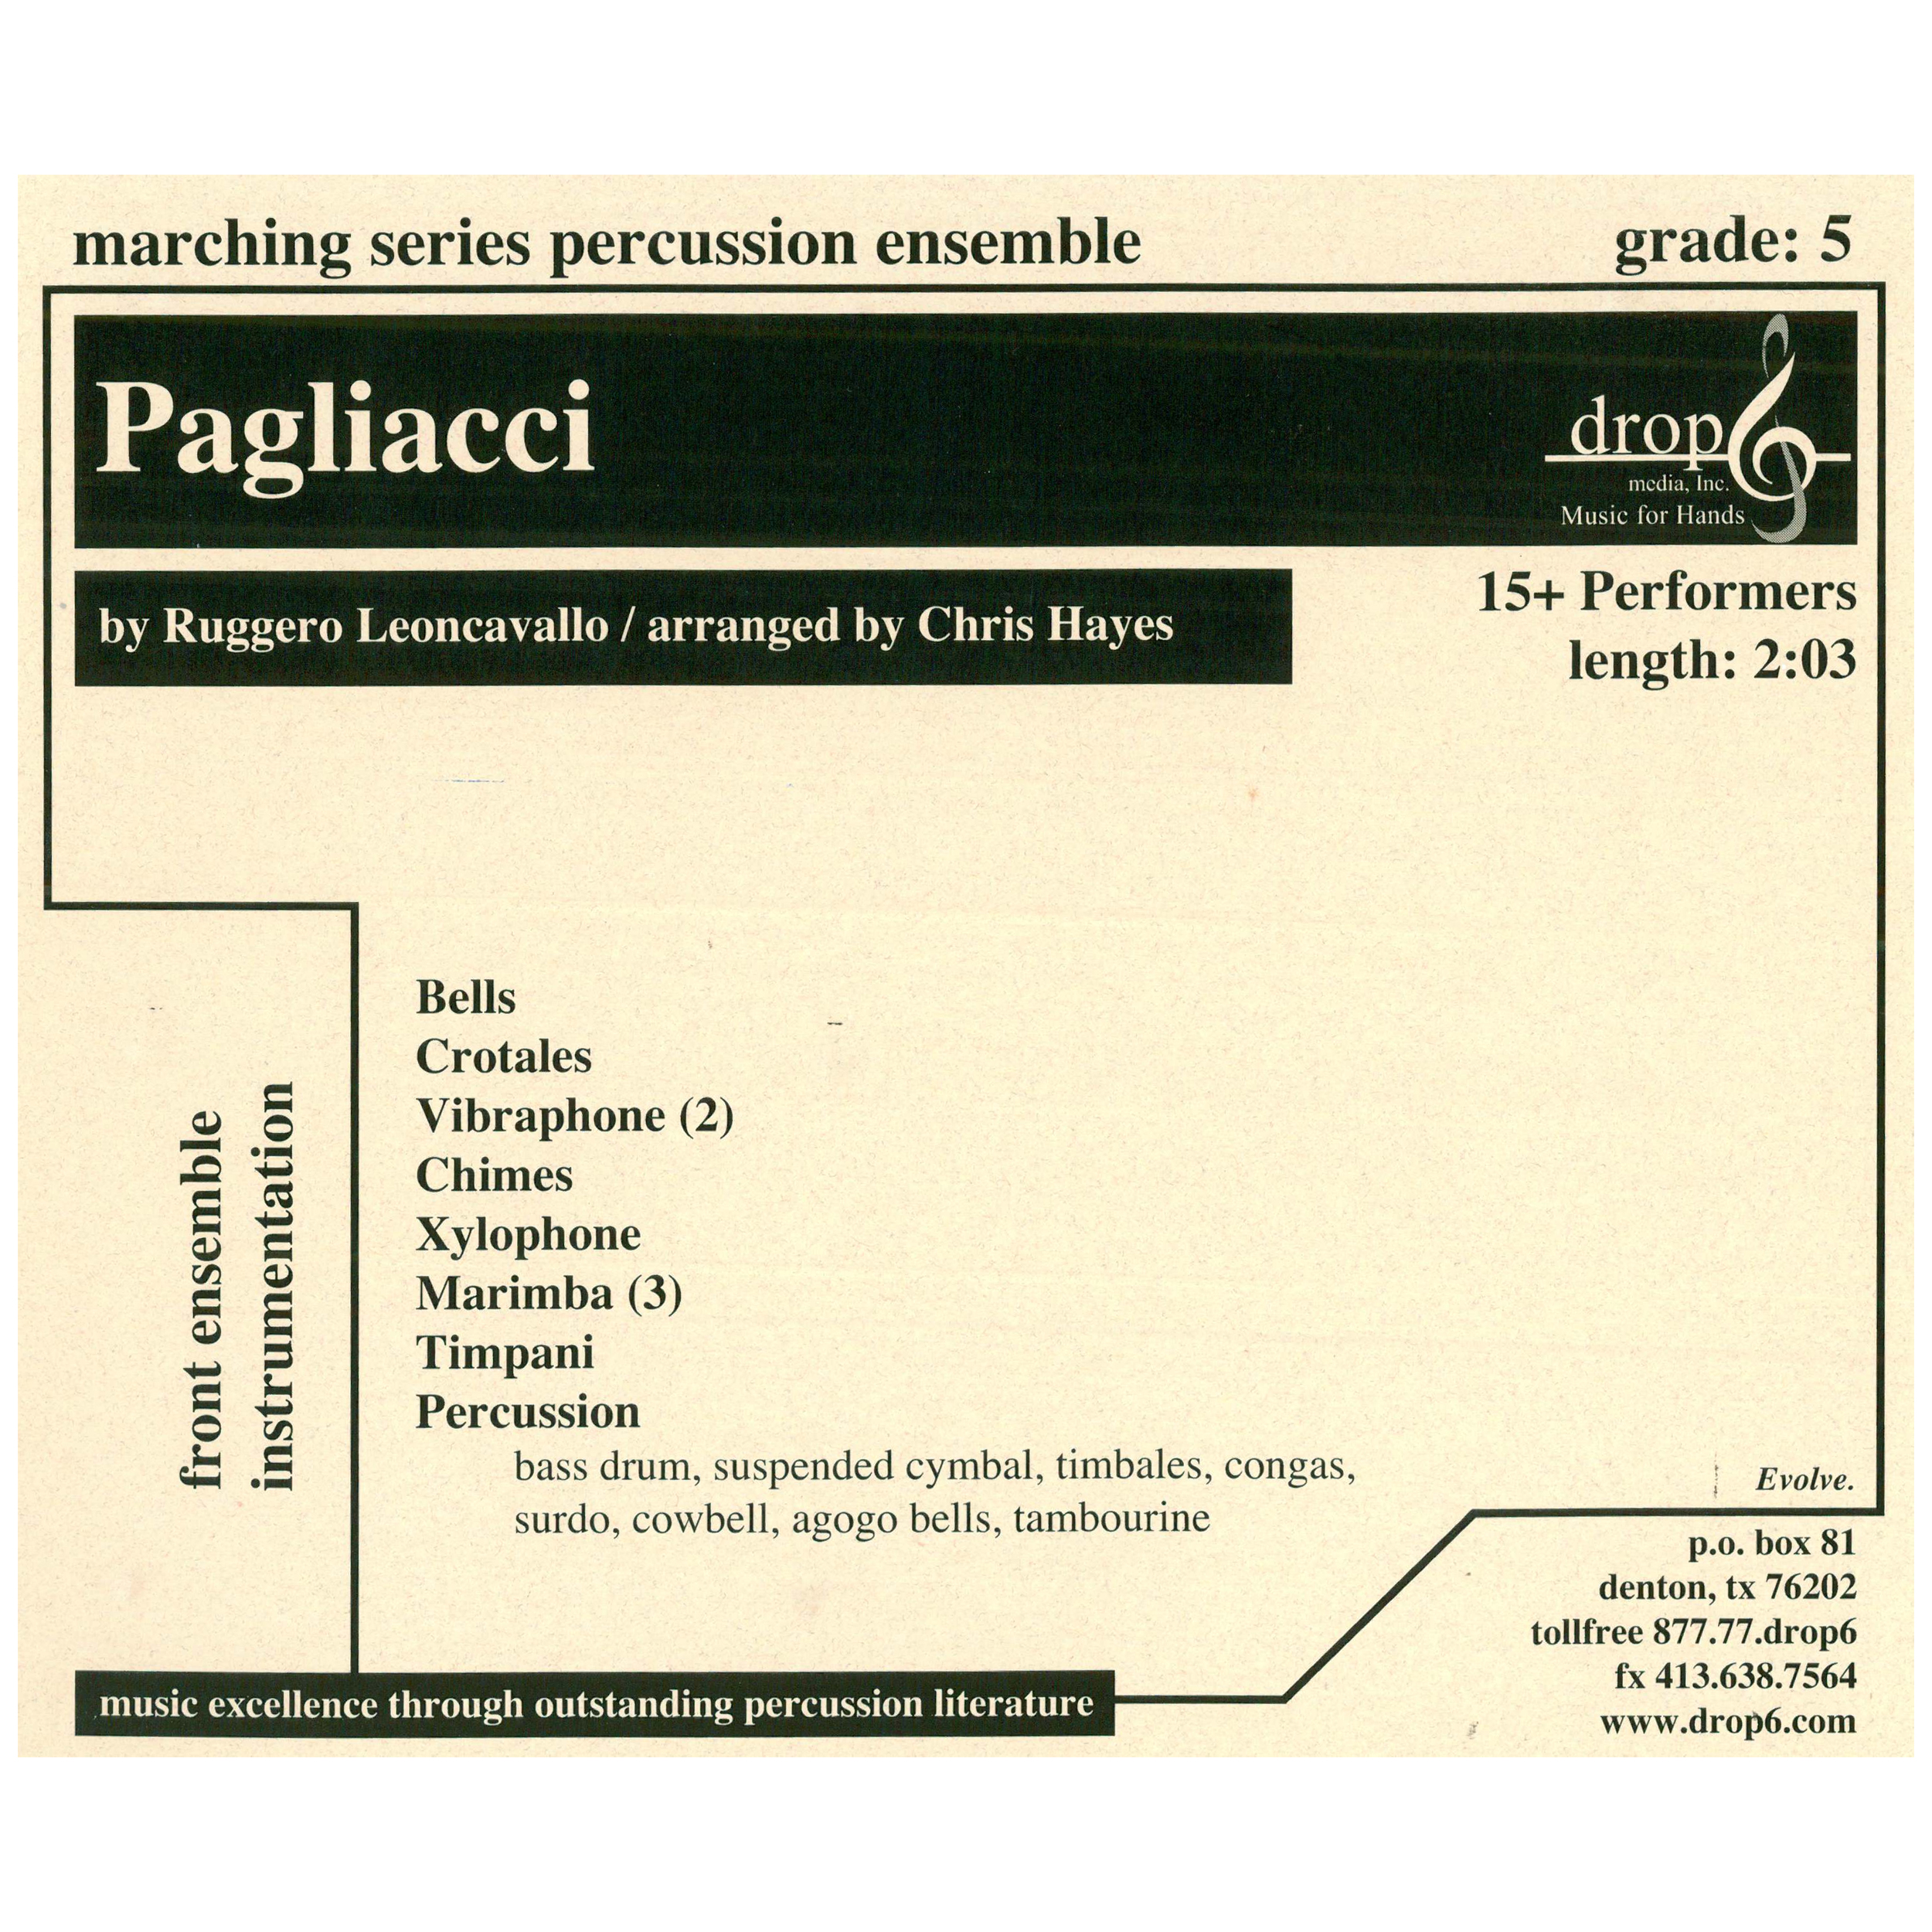 Pagliacci by Leoncavallo arr. Hayes